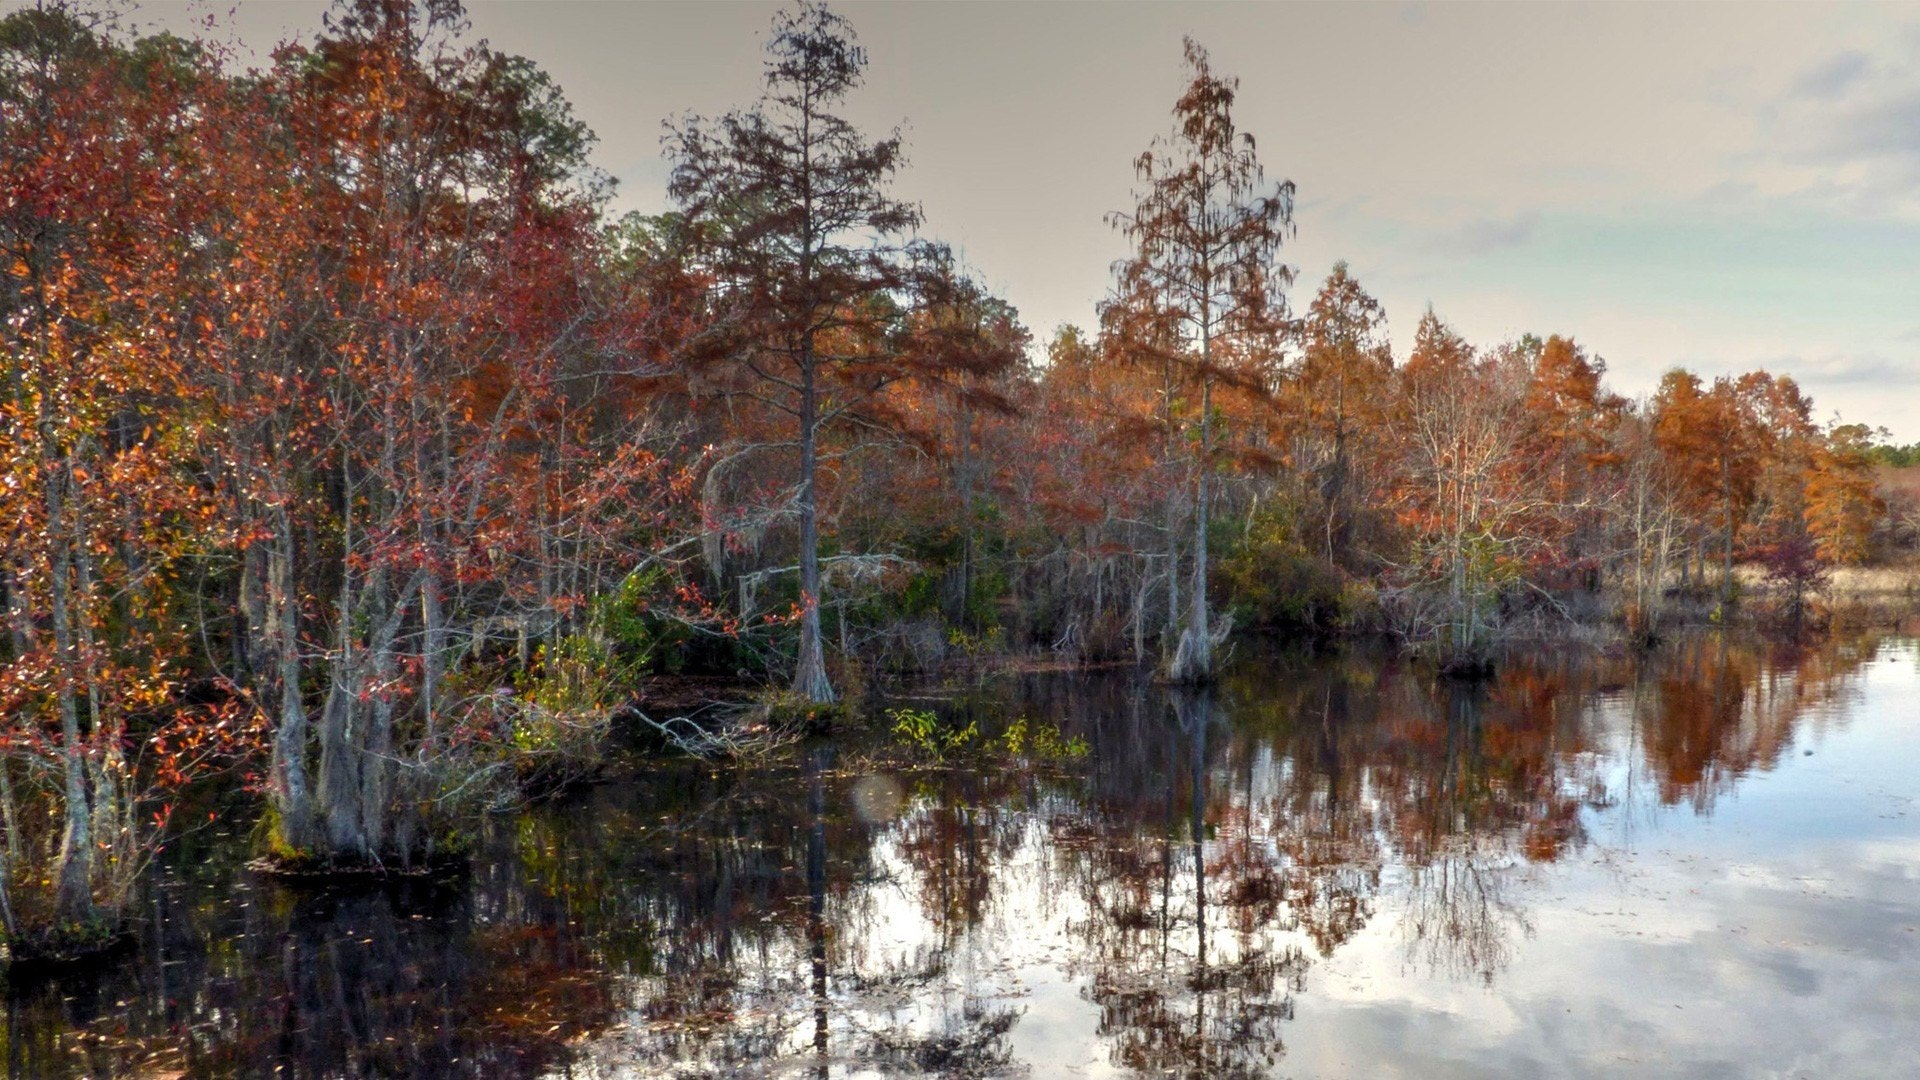 The Best Southeast Fall 2018 Camping According to Airstreamers